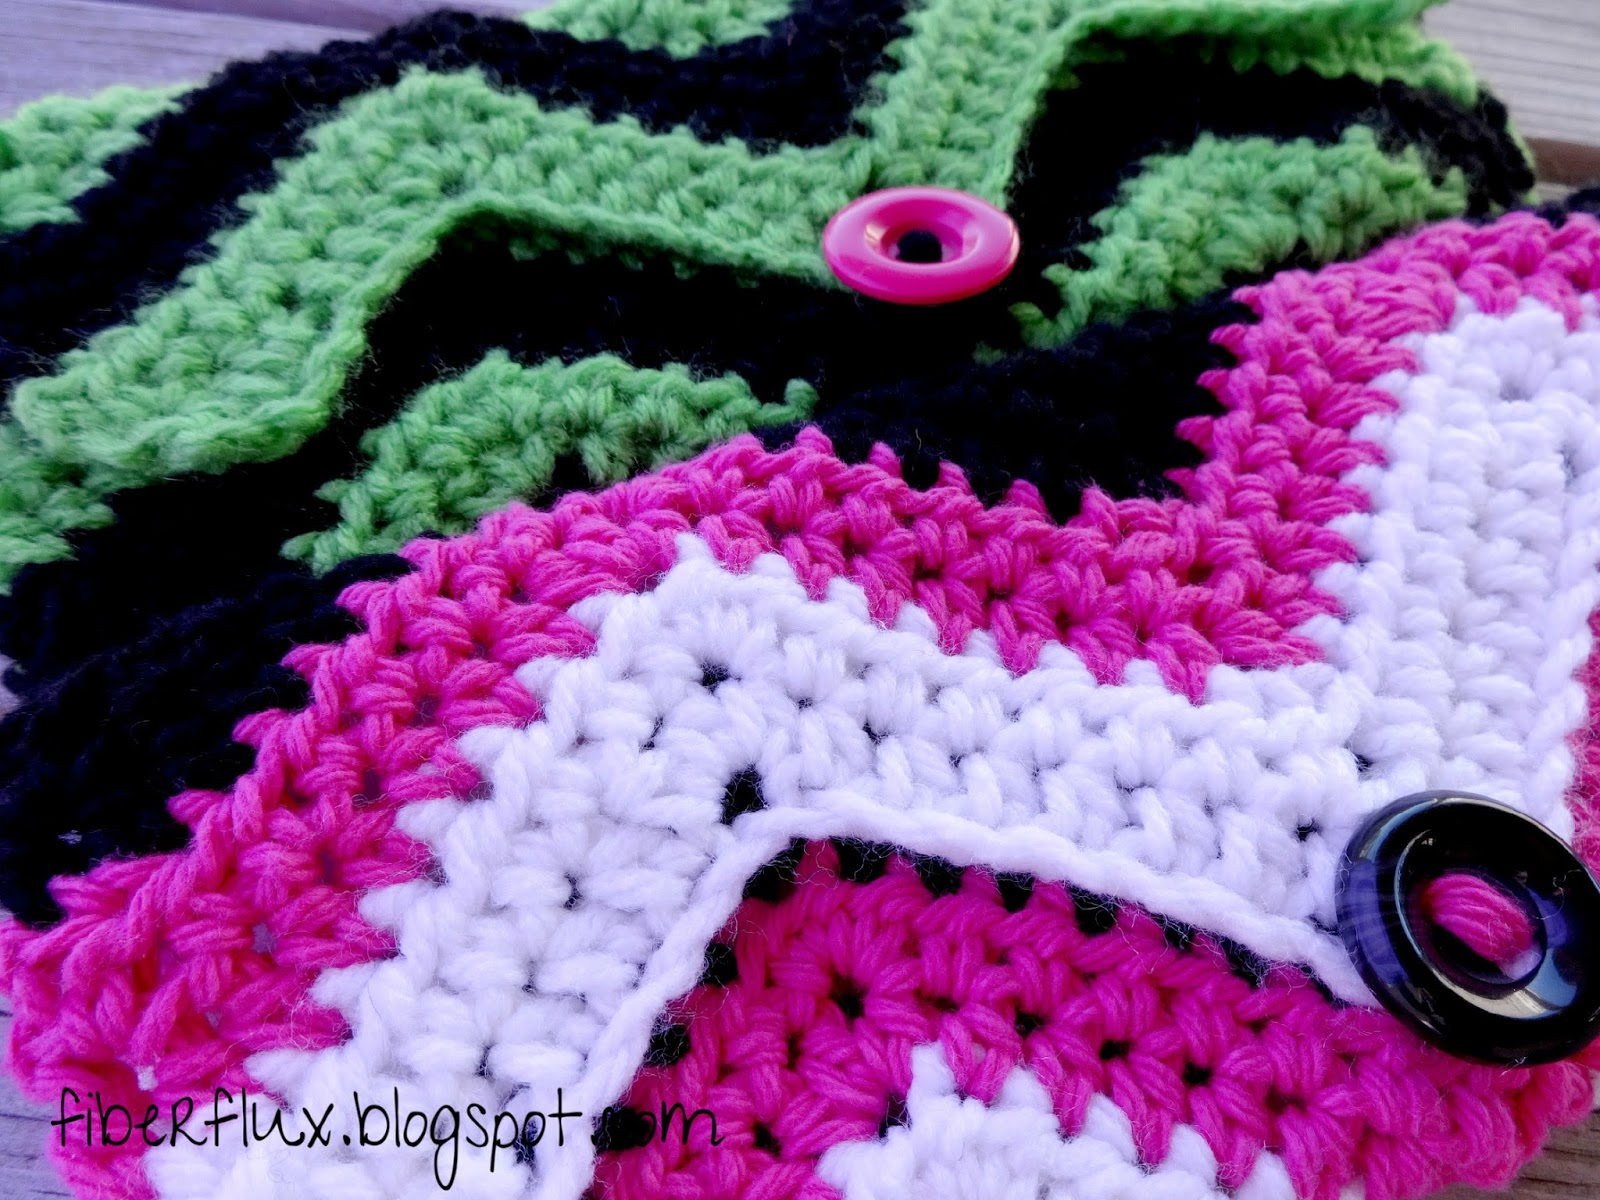 Crochet Clutch Pattern Free : Fiber Flux: Free Crochet Pattern...Graphic Chevron Clutch!